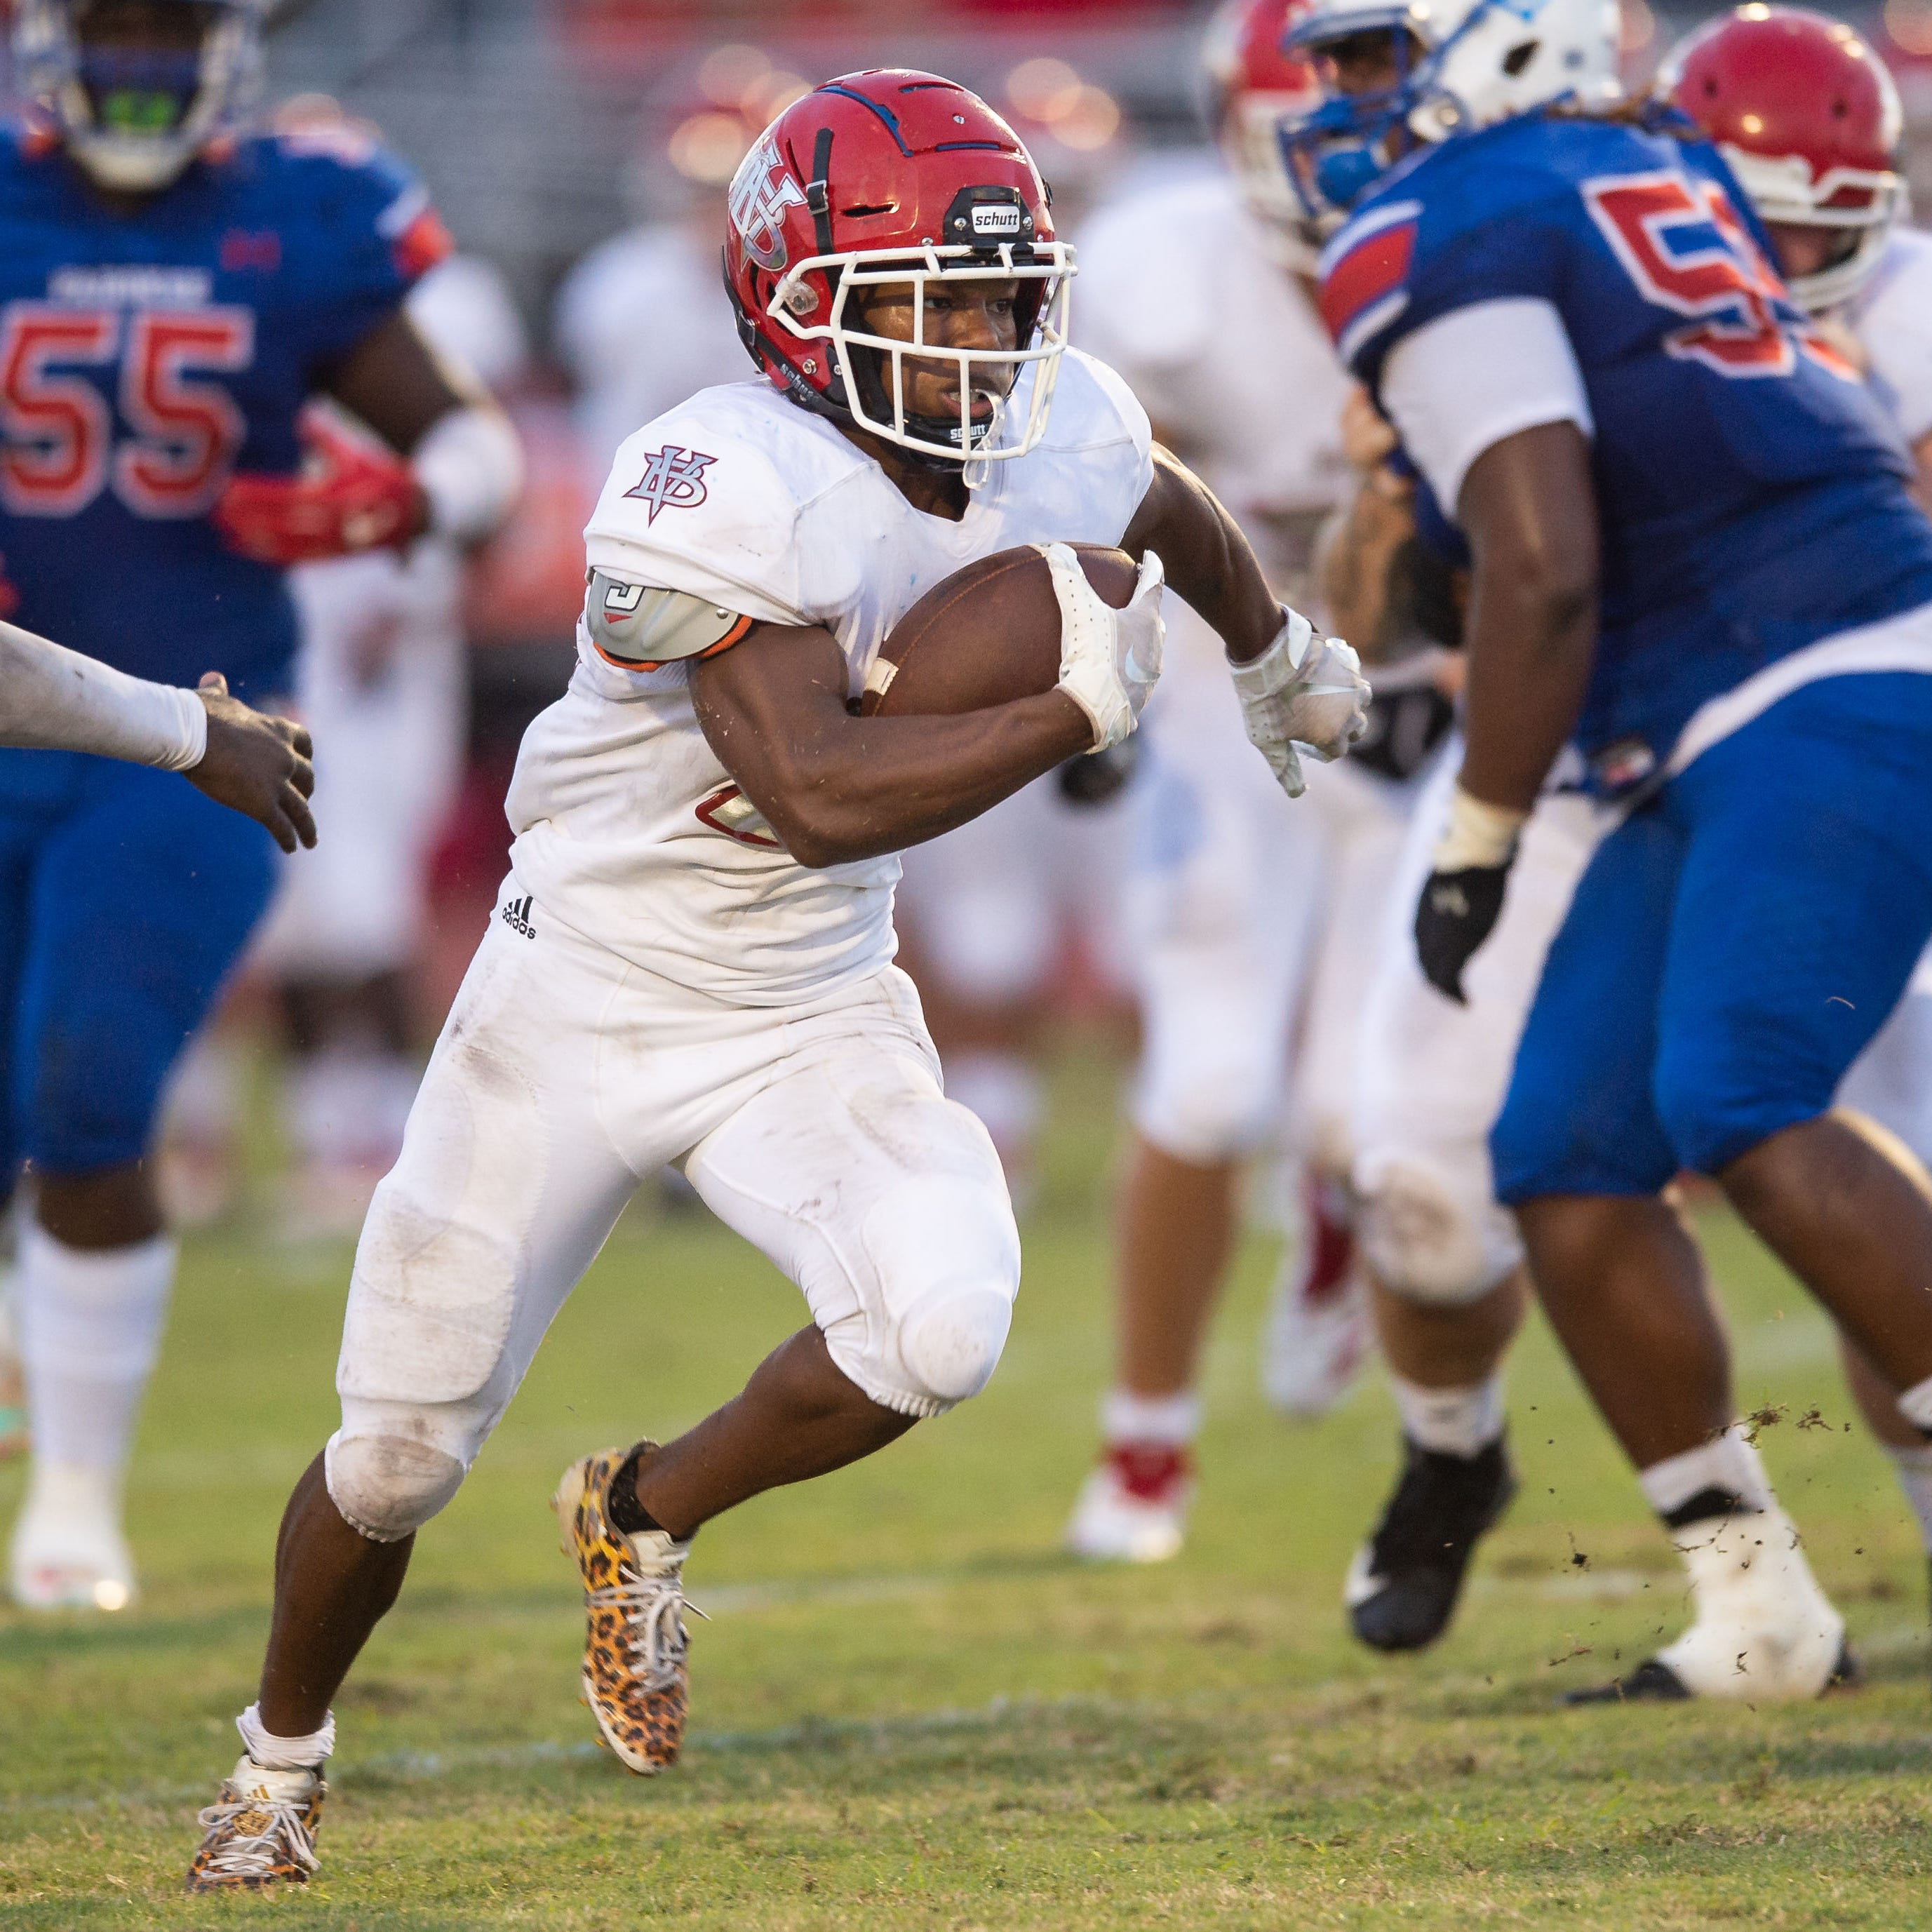 Week 5 roundup: Vero Beach rallies past Pahokee